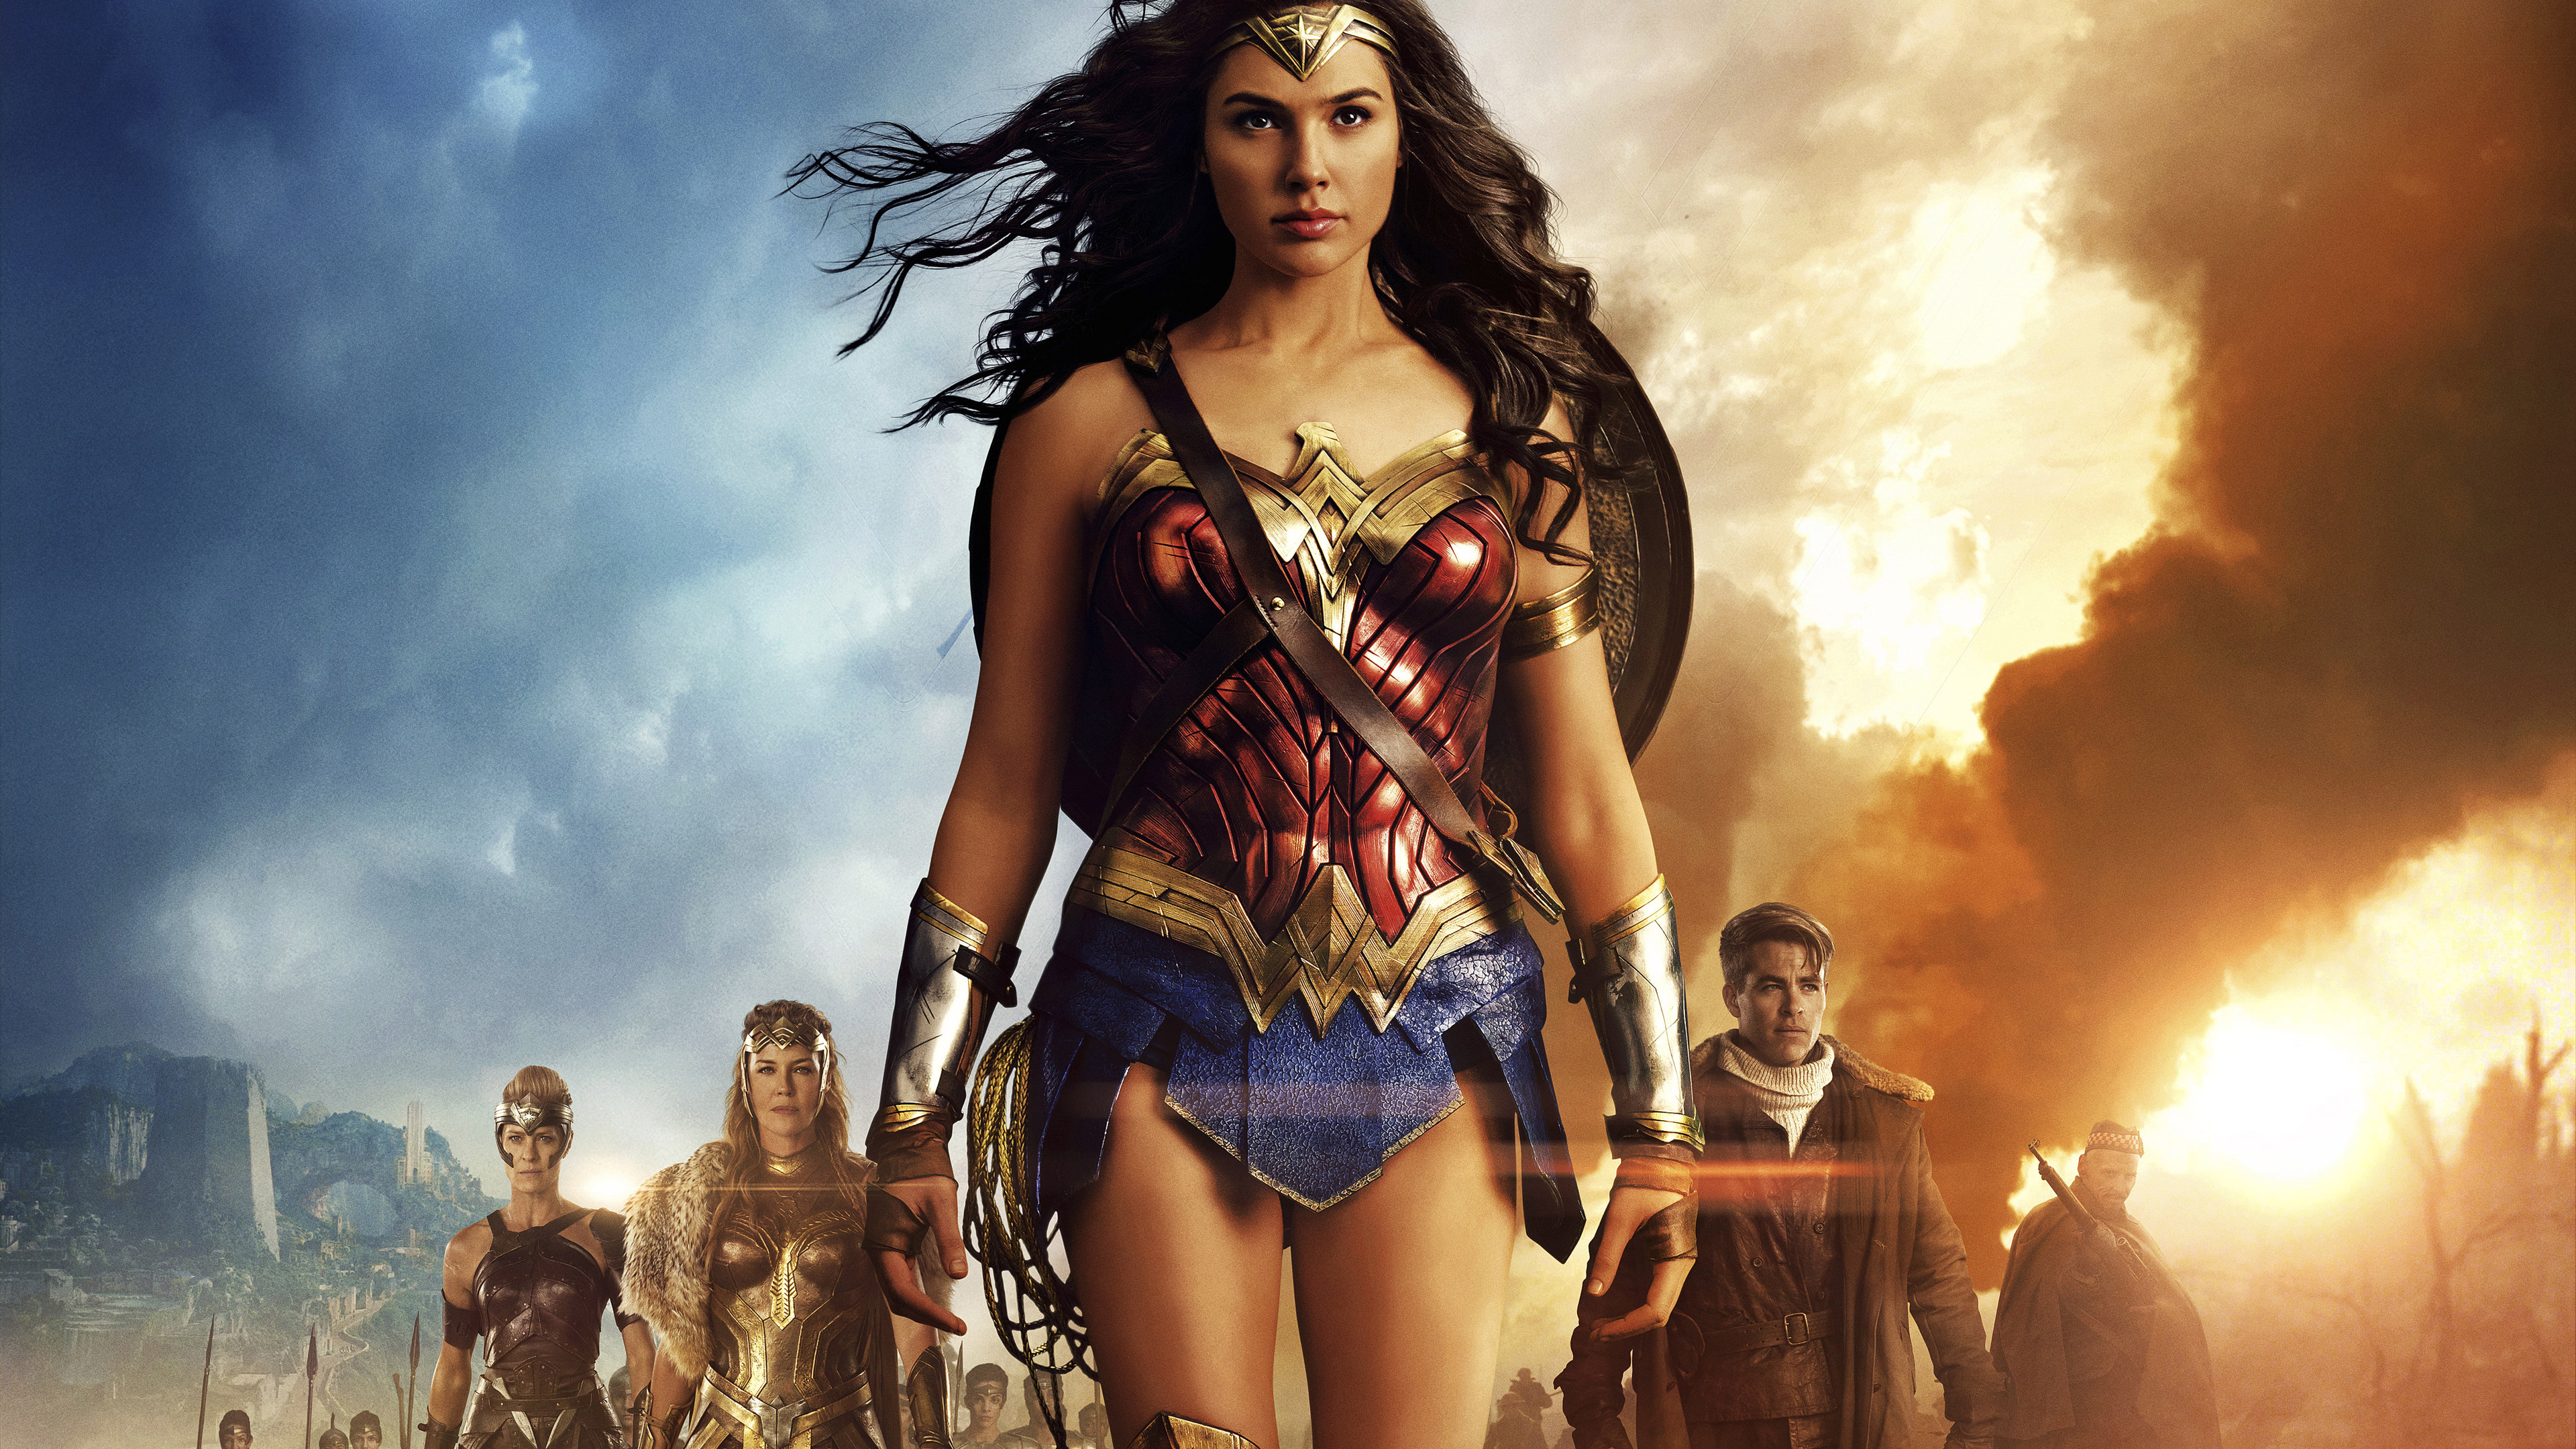 Wonder 2017 4k Movie Hd Movies 4k Wallpapers Images: 3840x2160 Wonder Woman 5k 2017 Movie 4k HD 4k Wallpapers